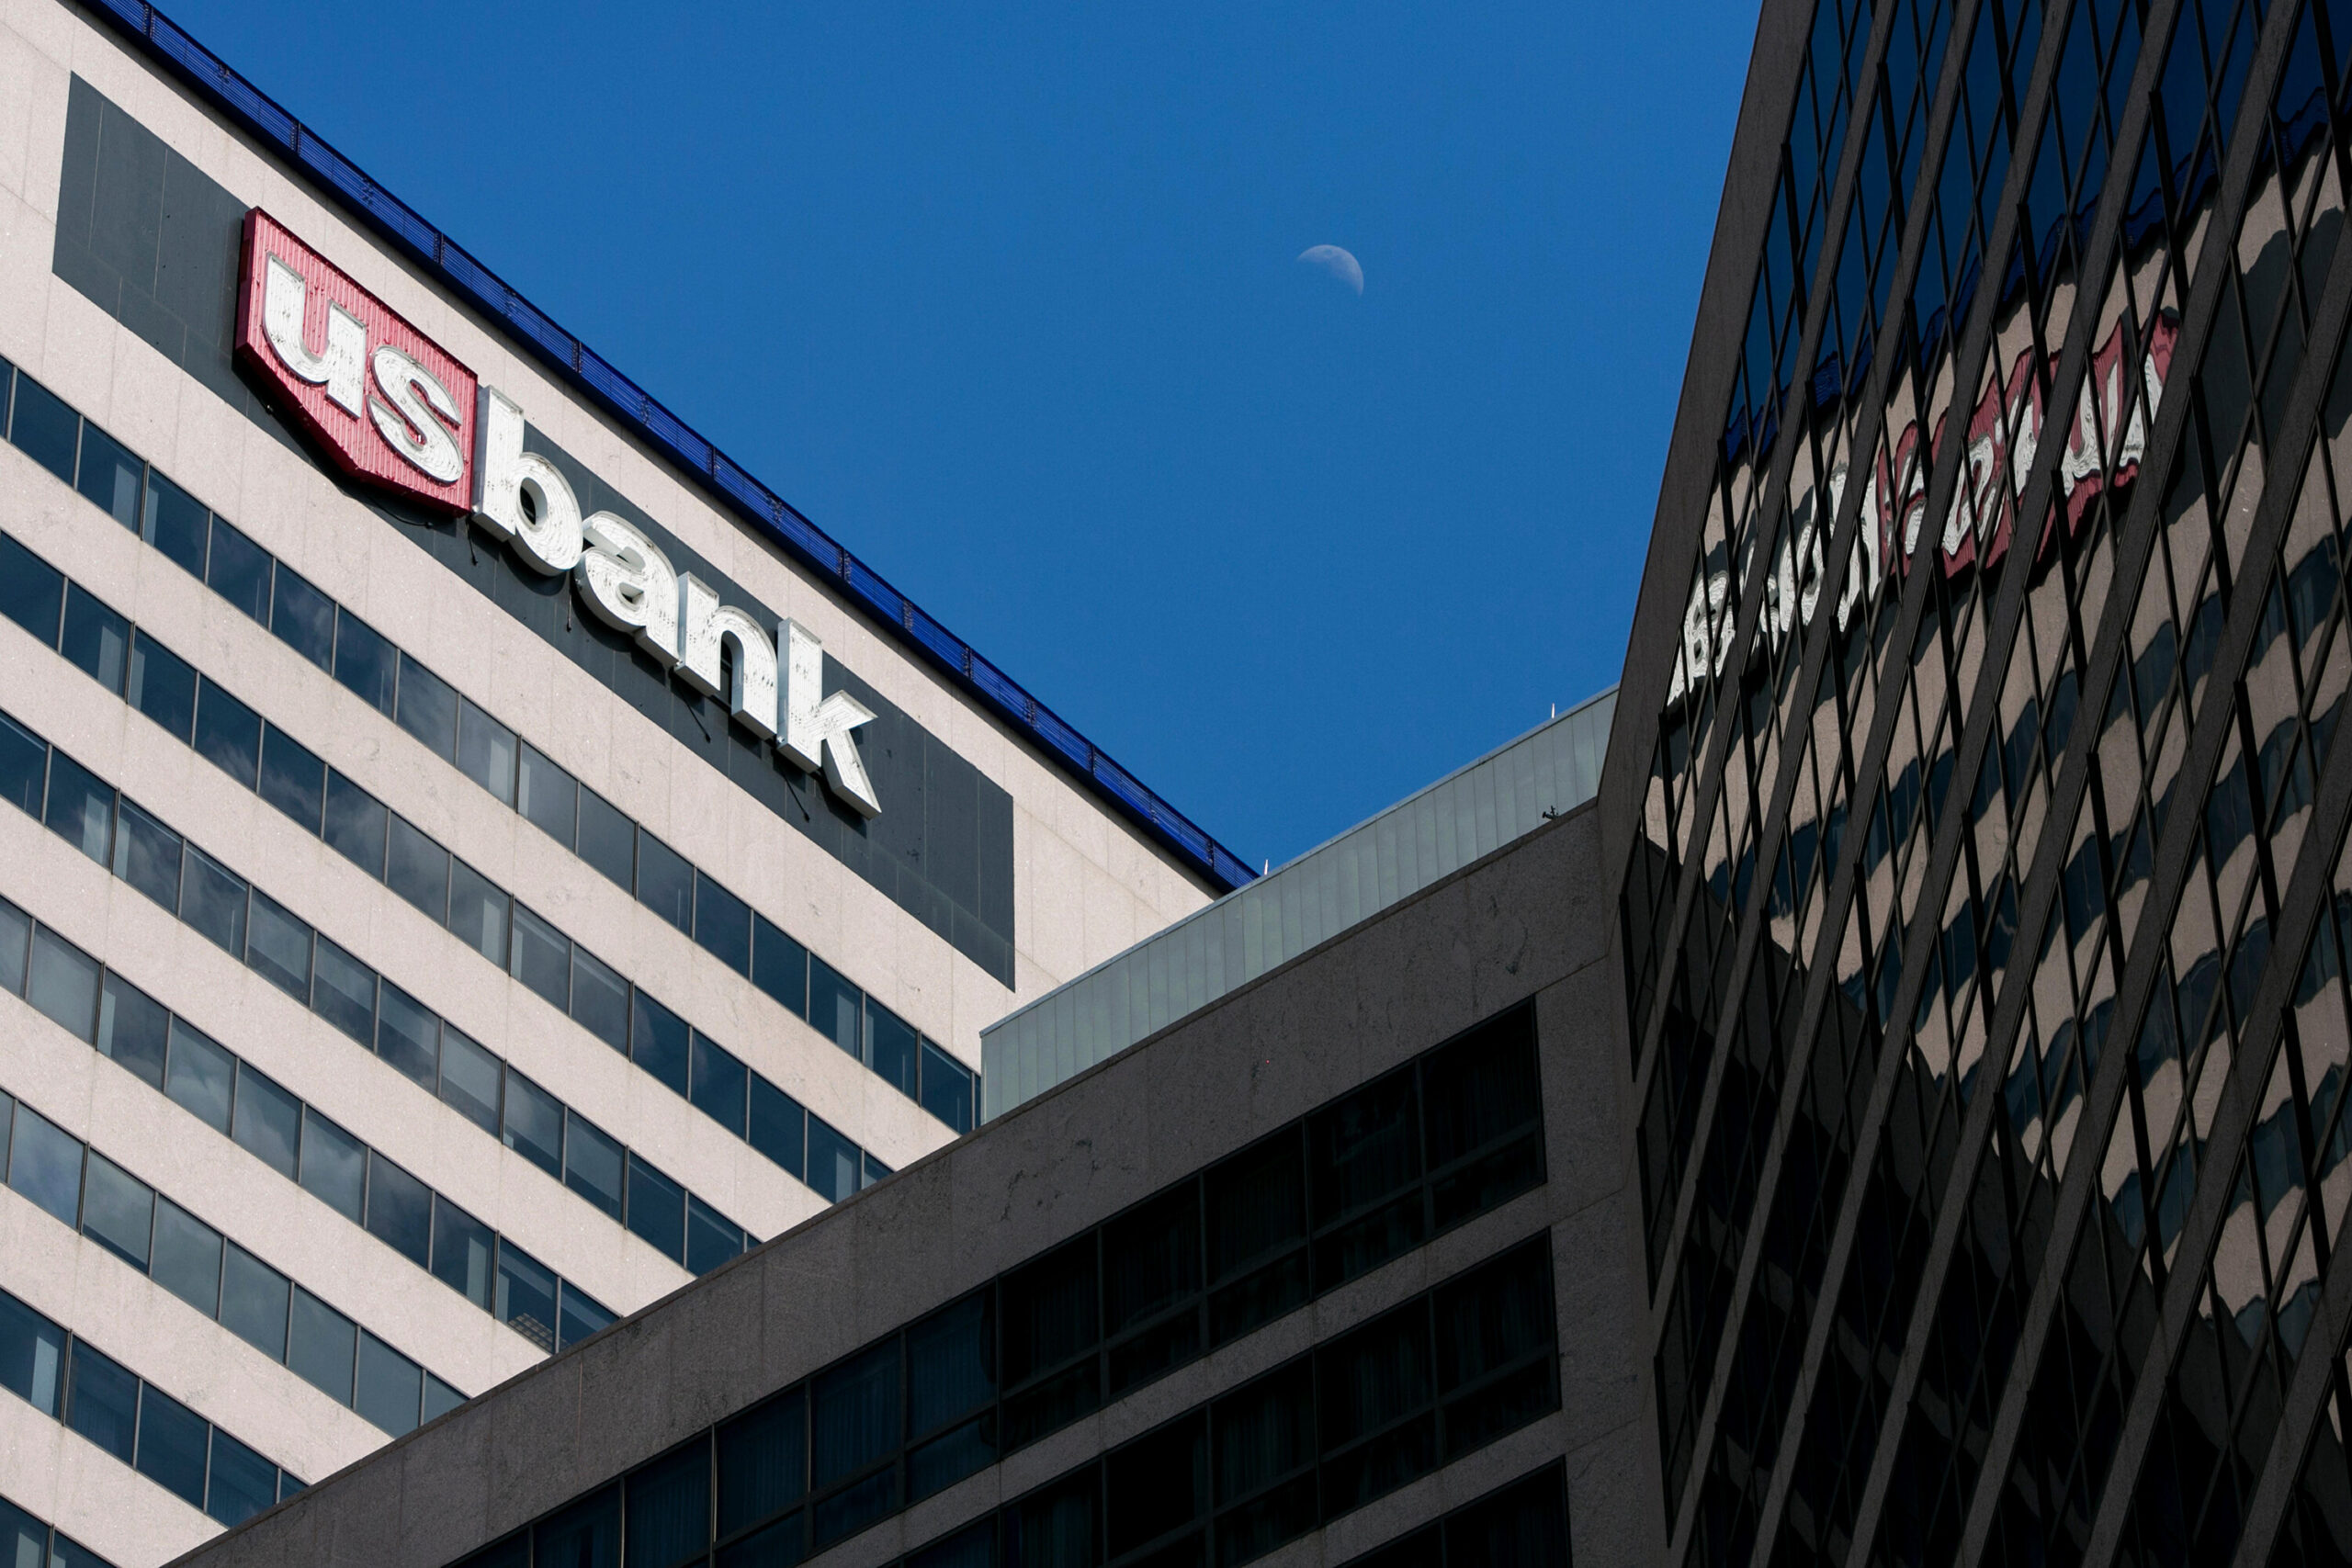 <i>Kristoffer Tripplaar/Alamy Stock Photo</i><br/>Big banks are beginning to push back their return-to-office dates because of surging Covid-19 cases. This image shows the U.S. Bank building in Cincinnati